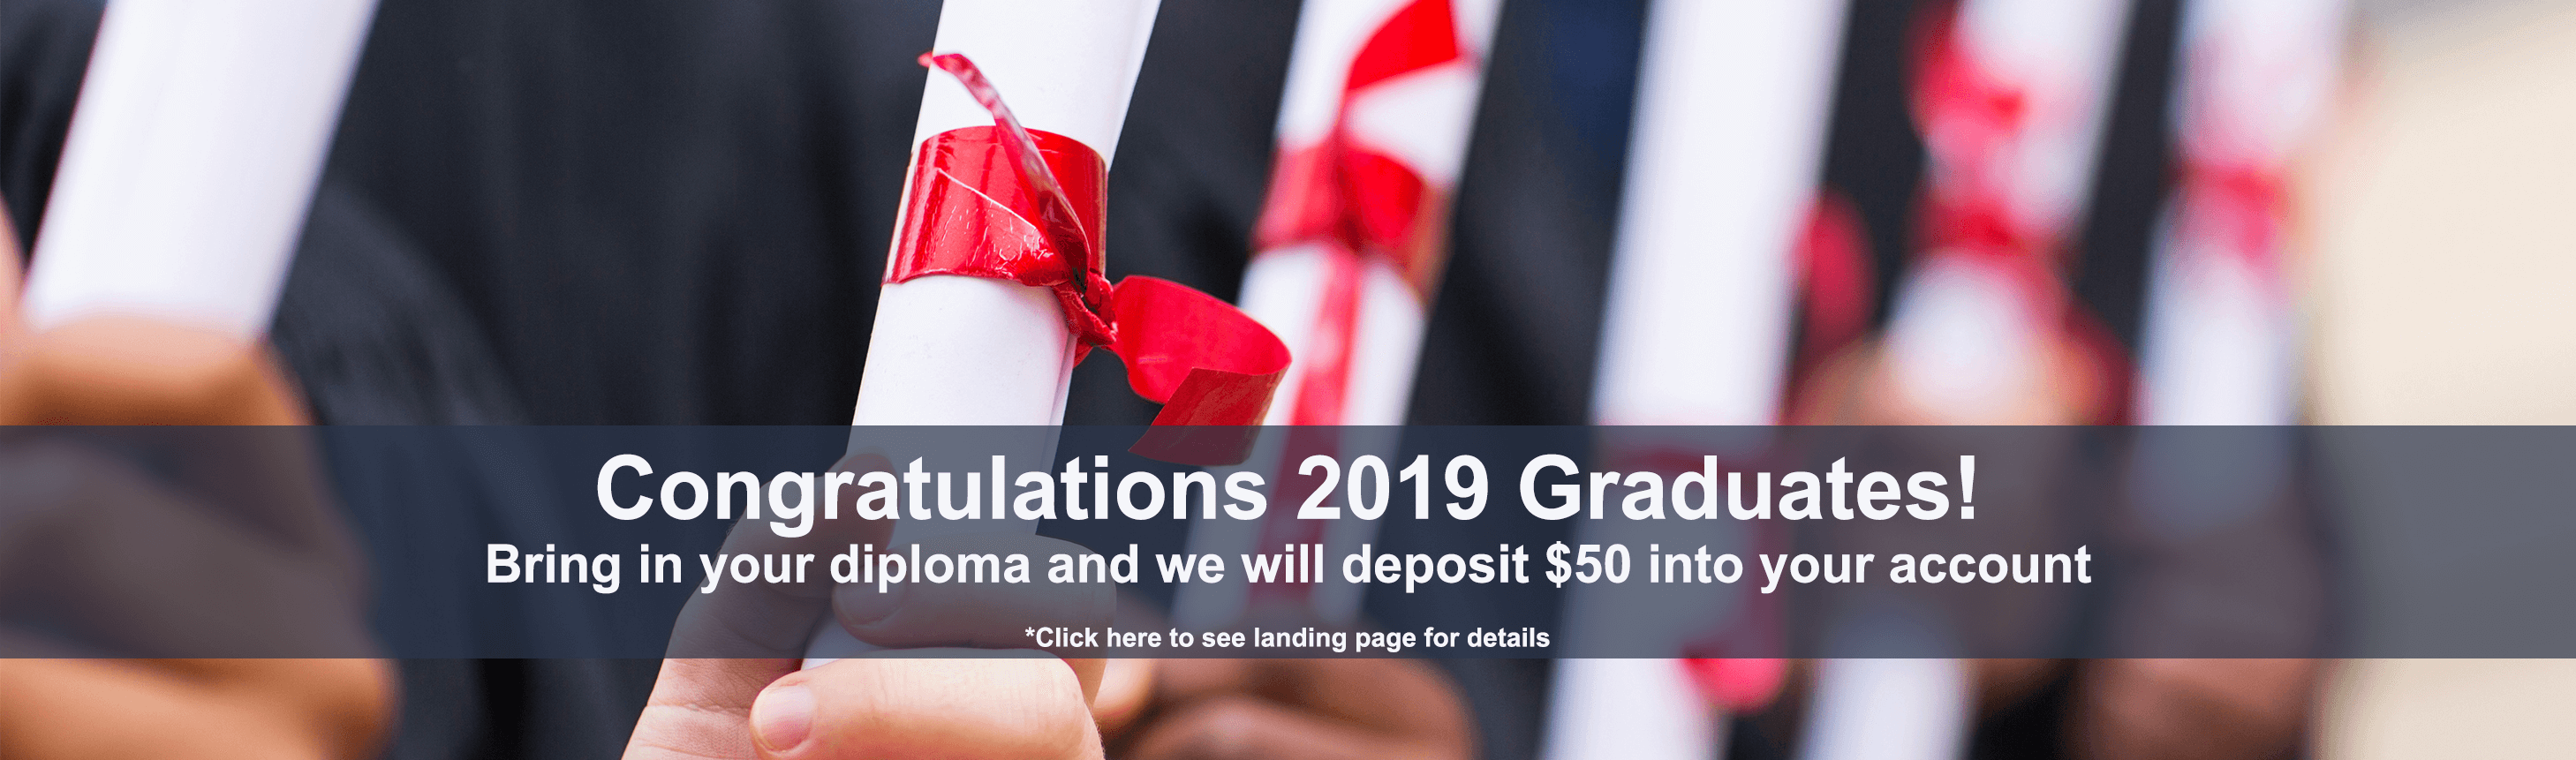 Congratulations 2019 Graduates! Bring in your diploma and we will deposit $50 into your account. *Click here to see landing page for details